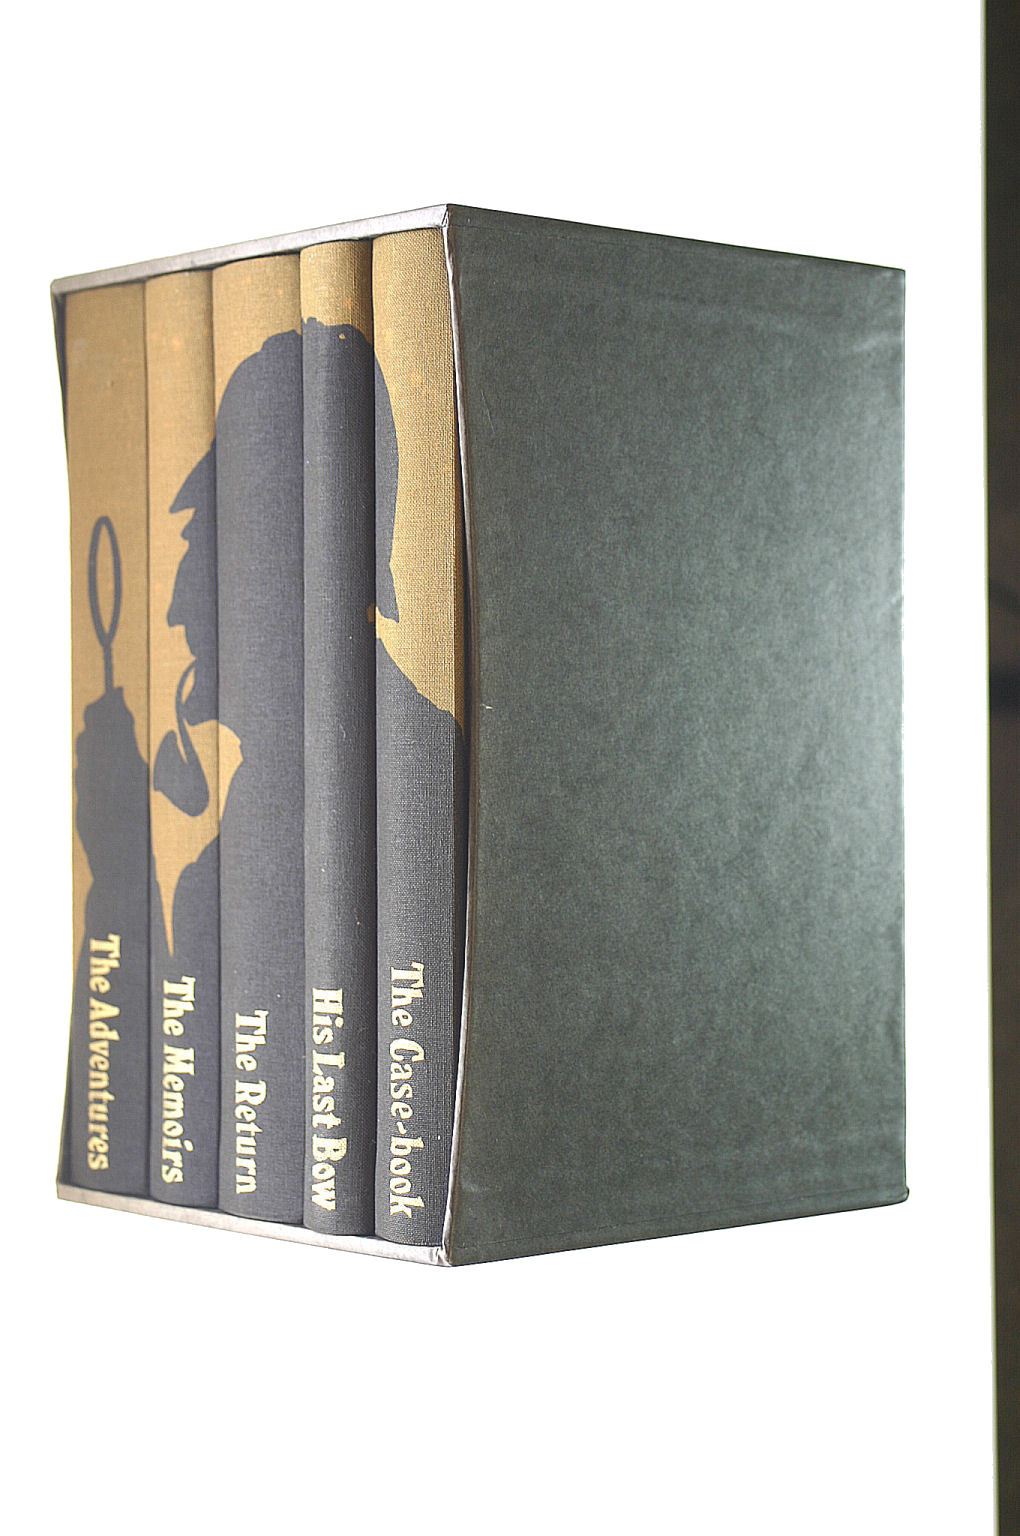 Image for Sherlock Holmes Complete Short Stories; The Adventures, The Memoirs, The Return, His Last Bow, The Case-Book. 5 Volumes